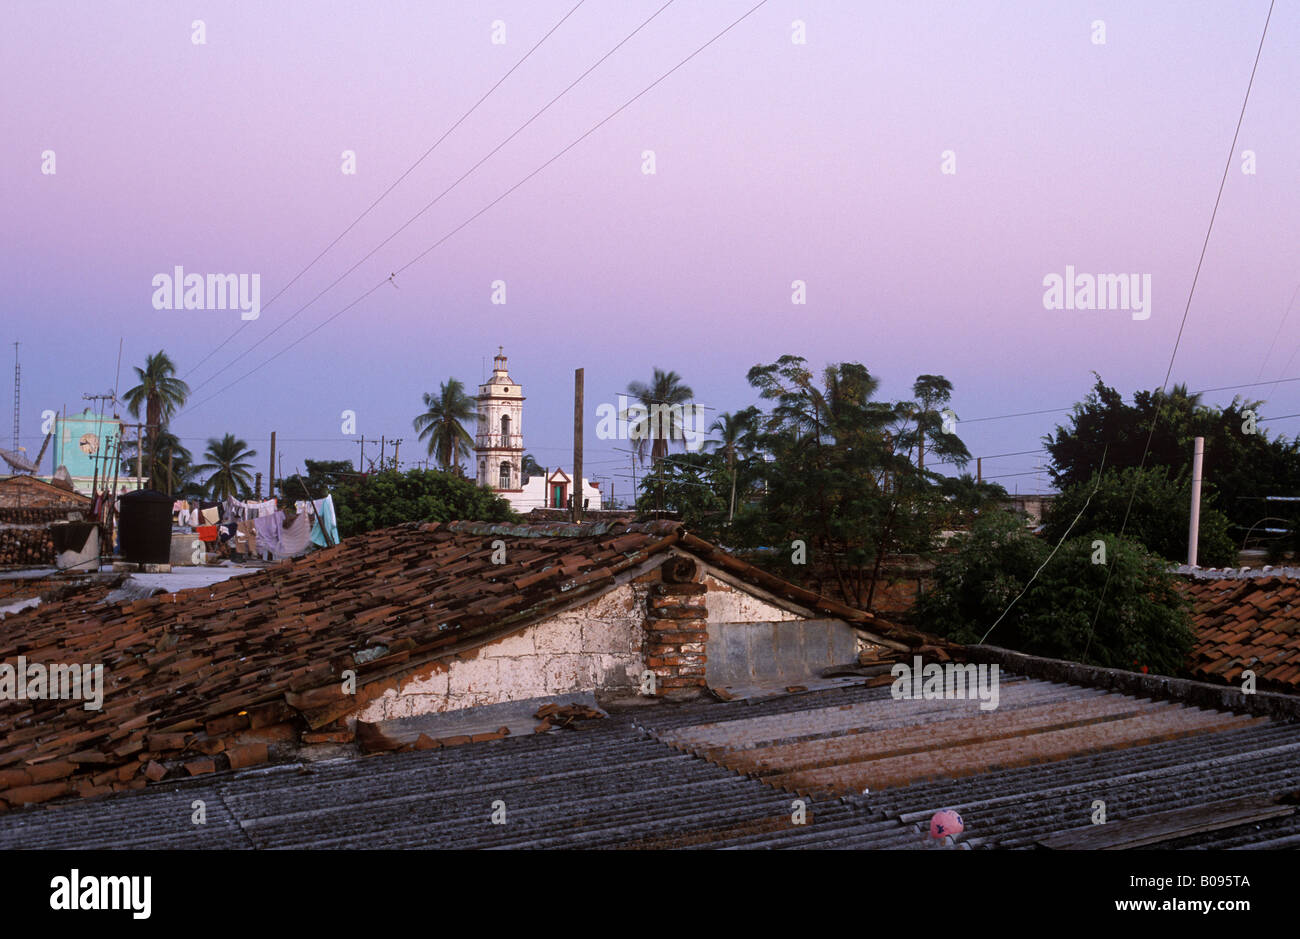 View over the rooftops of Mexcaltitan, Nayarit, Mexico - Stock Image